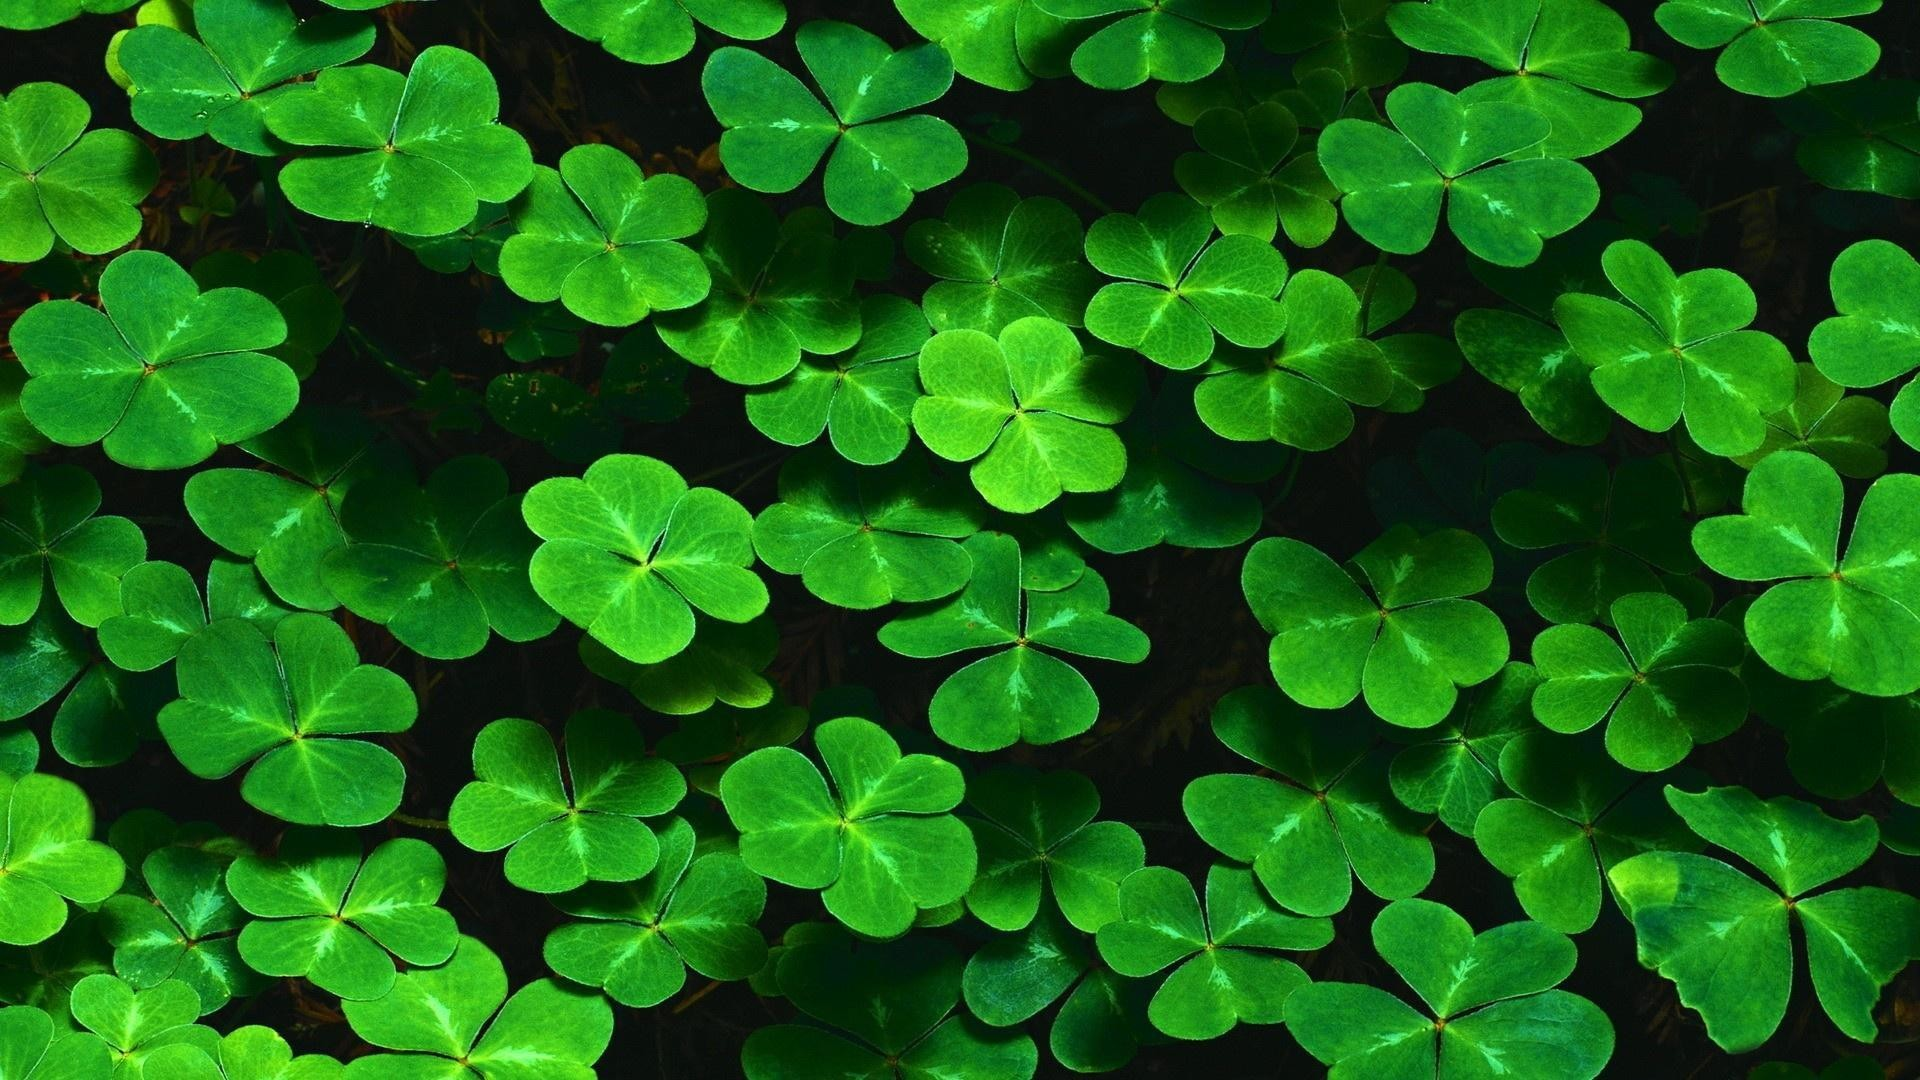 4 Leaf Clover Wallpaper 46 Images